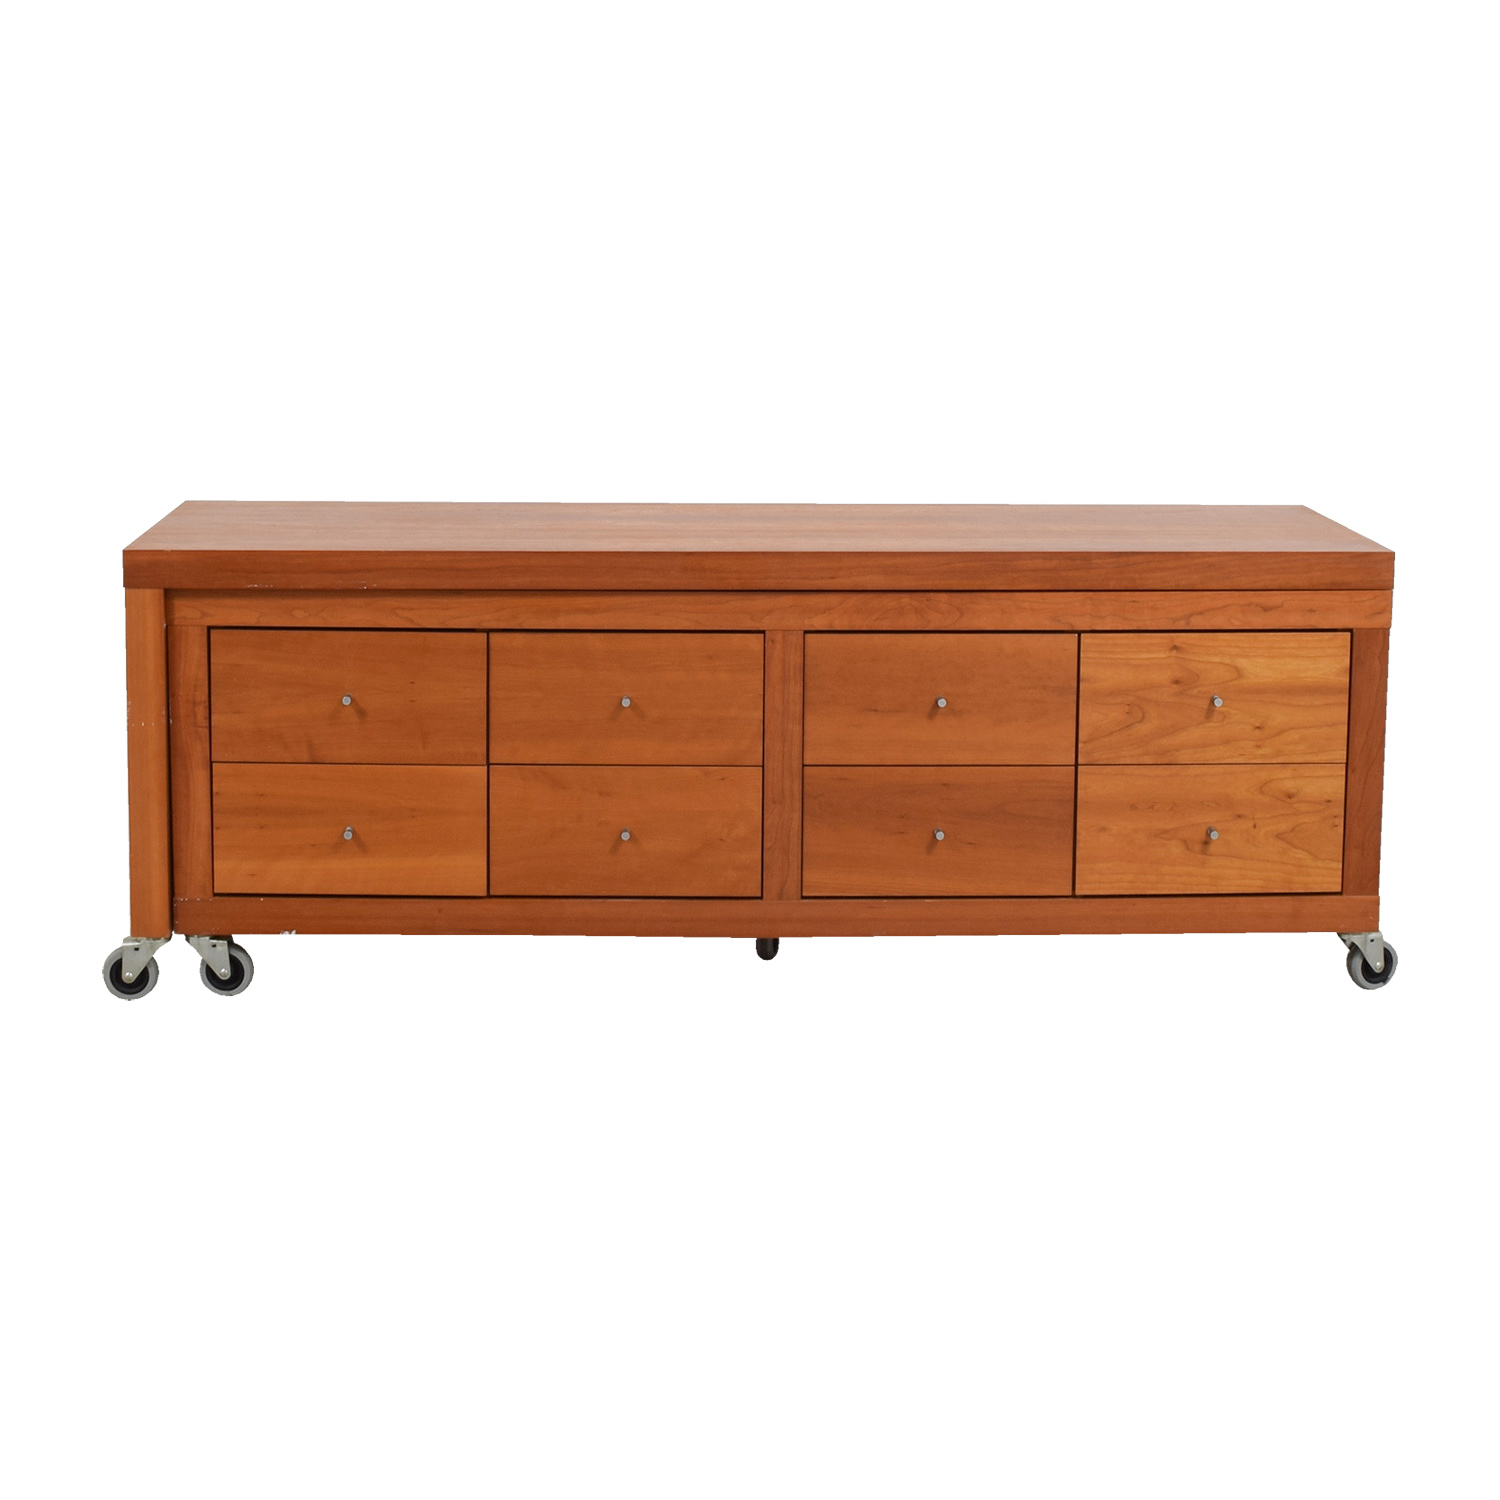 Workbench Eight-Drawer Console Entertainment Center sale